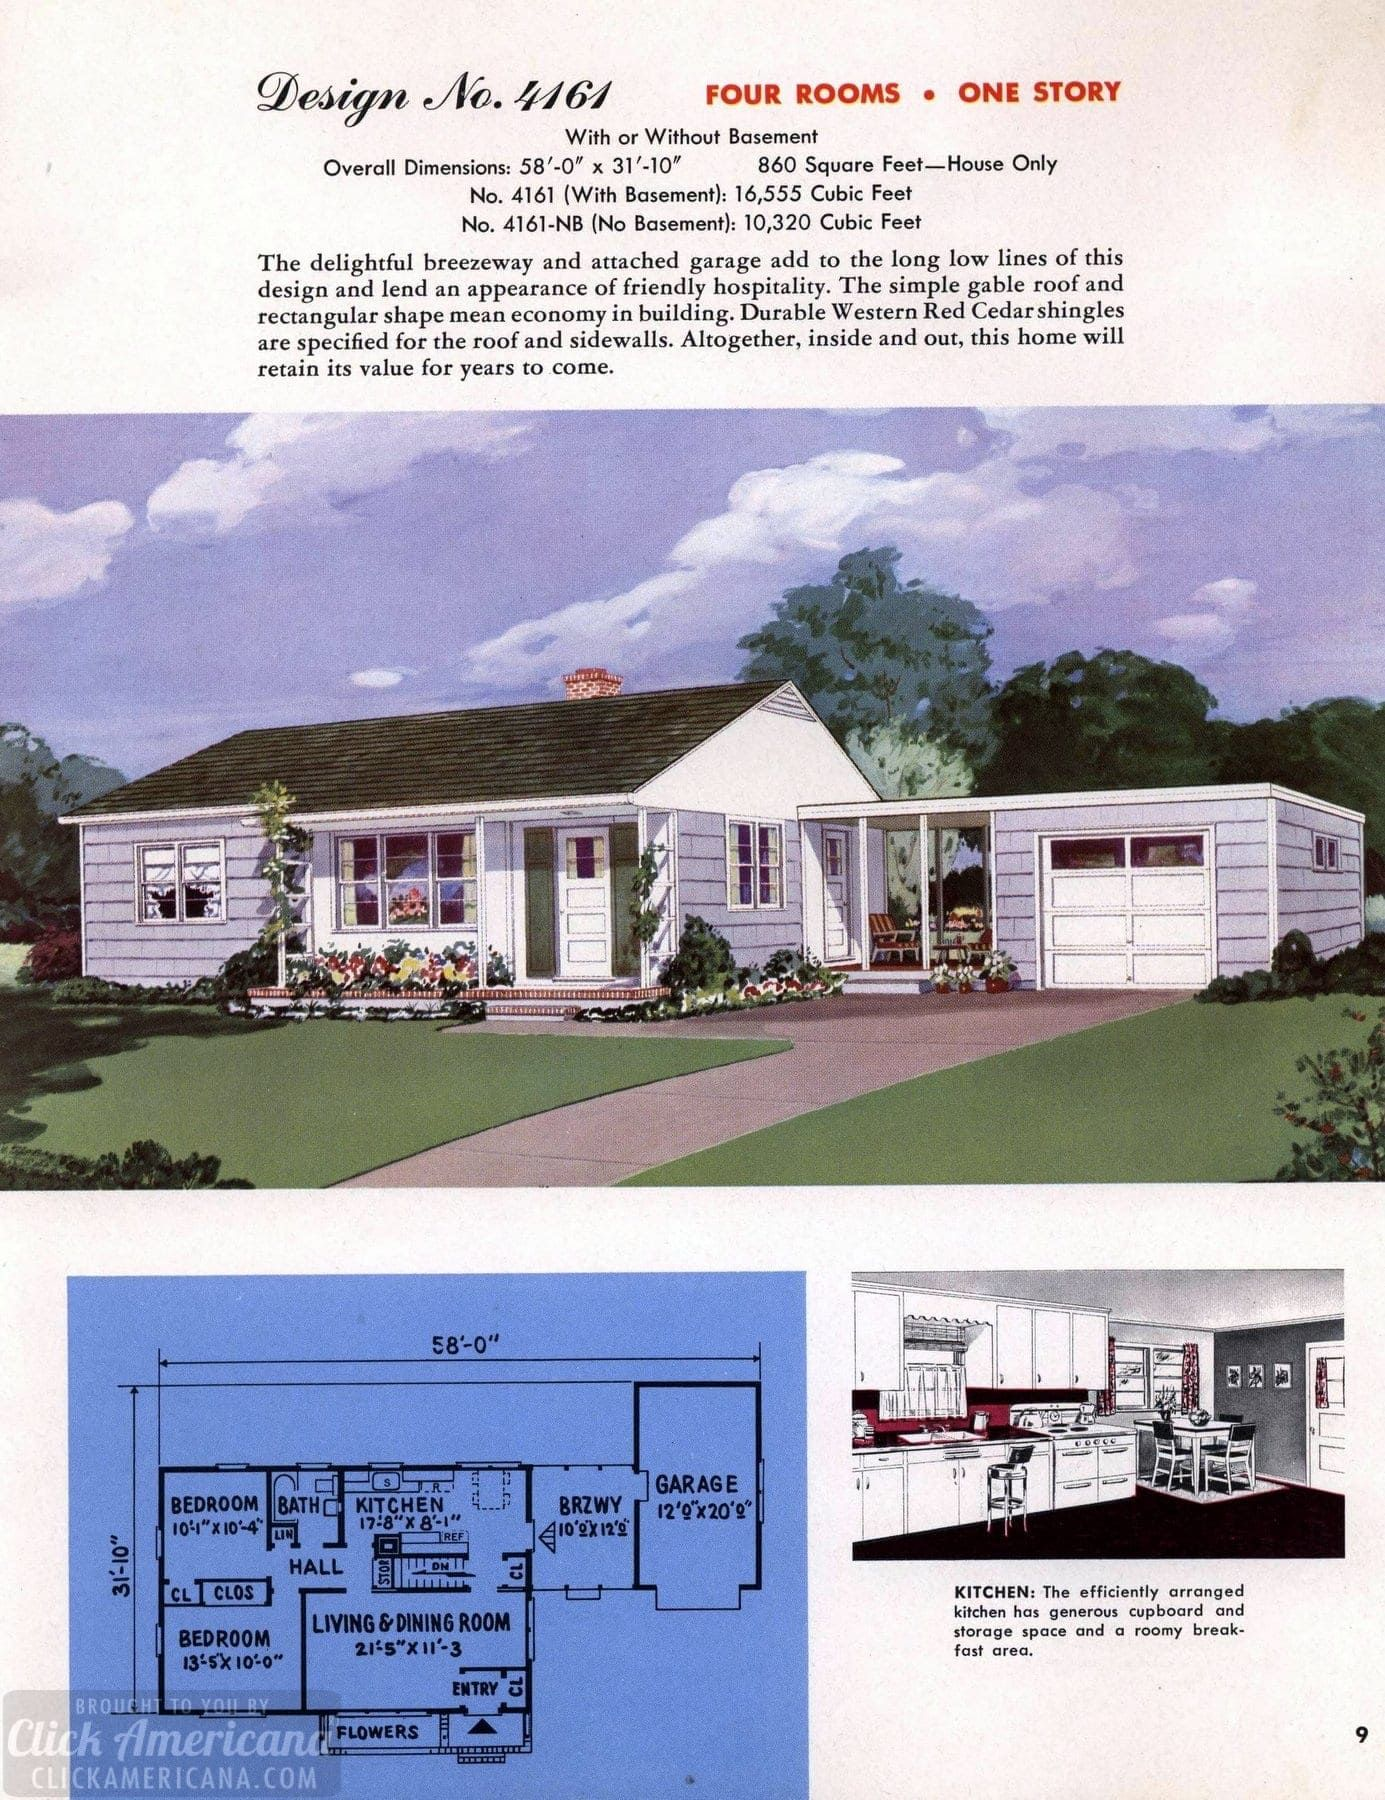 130 vintage 50s house plans used to build millions of mid century homes we still live in today